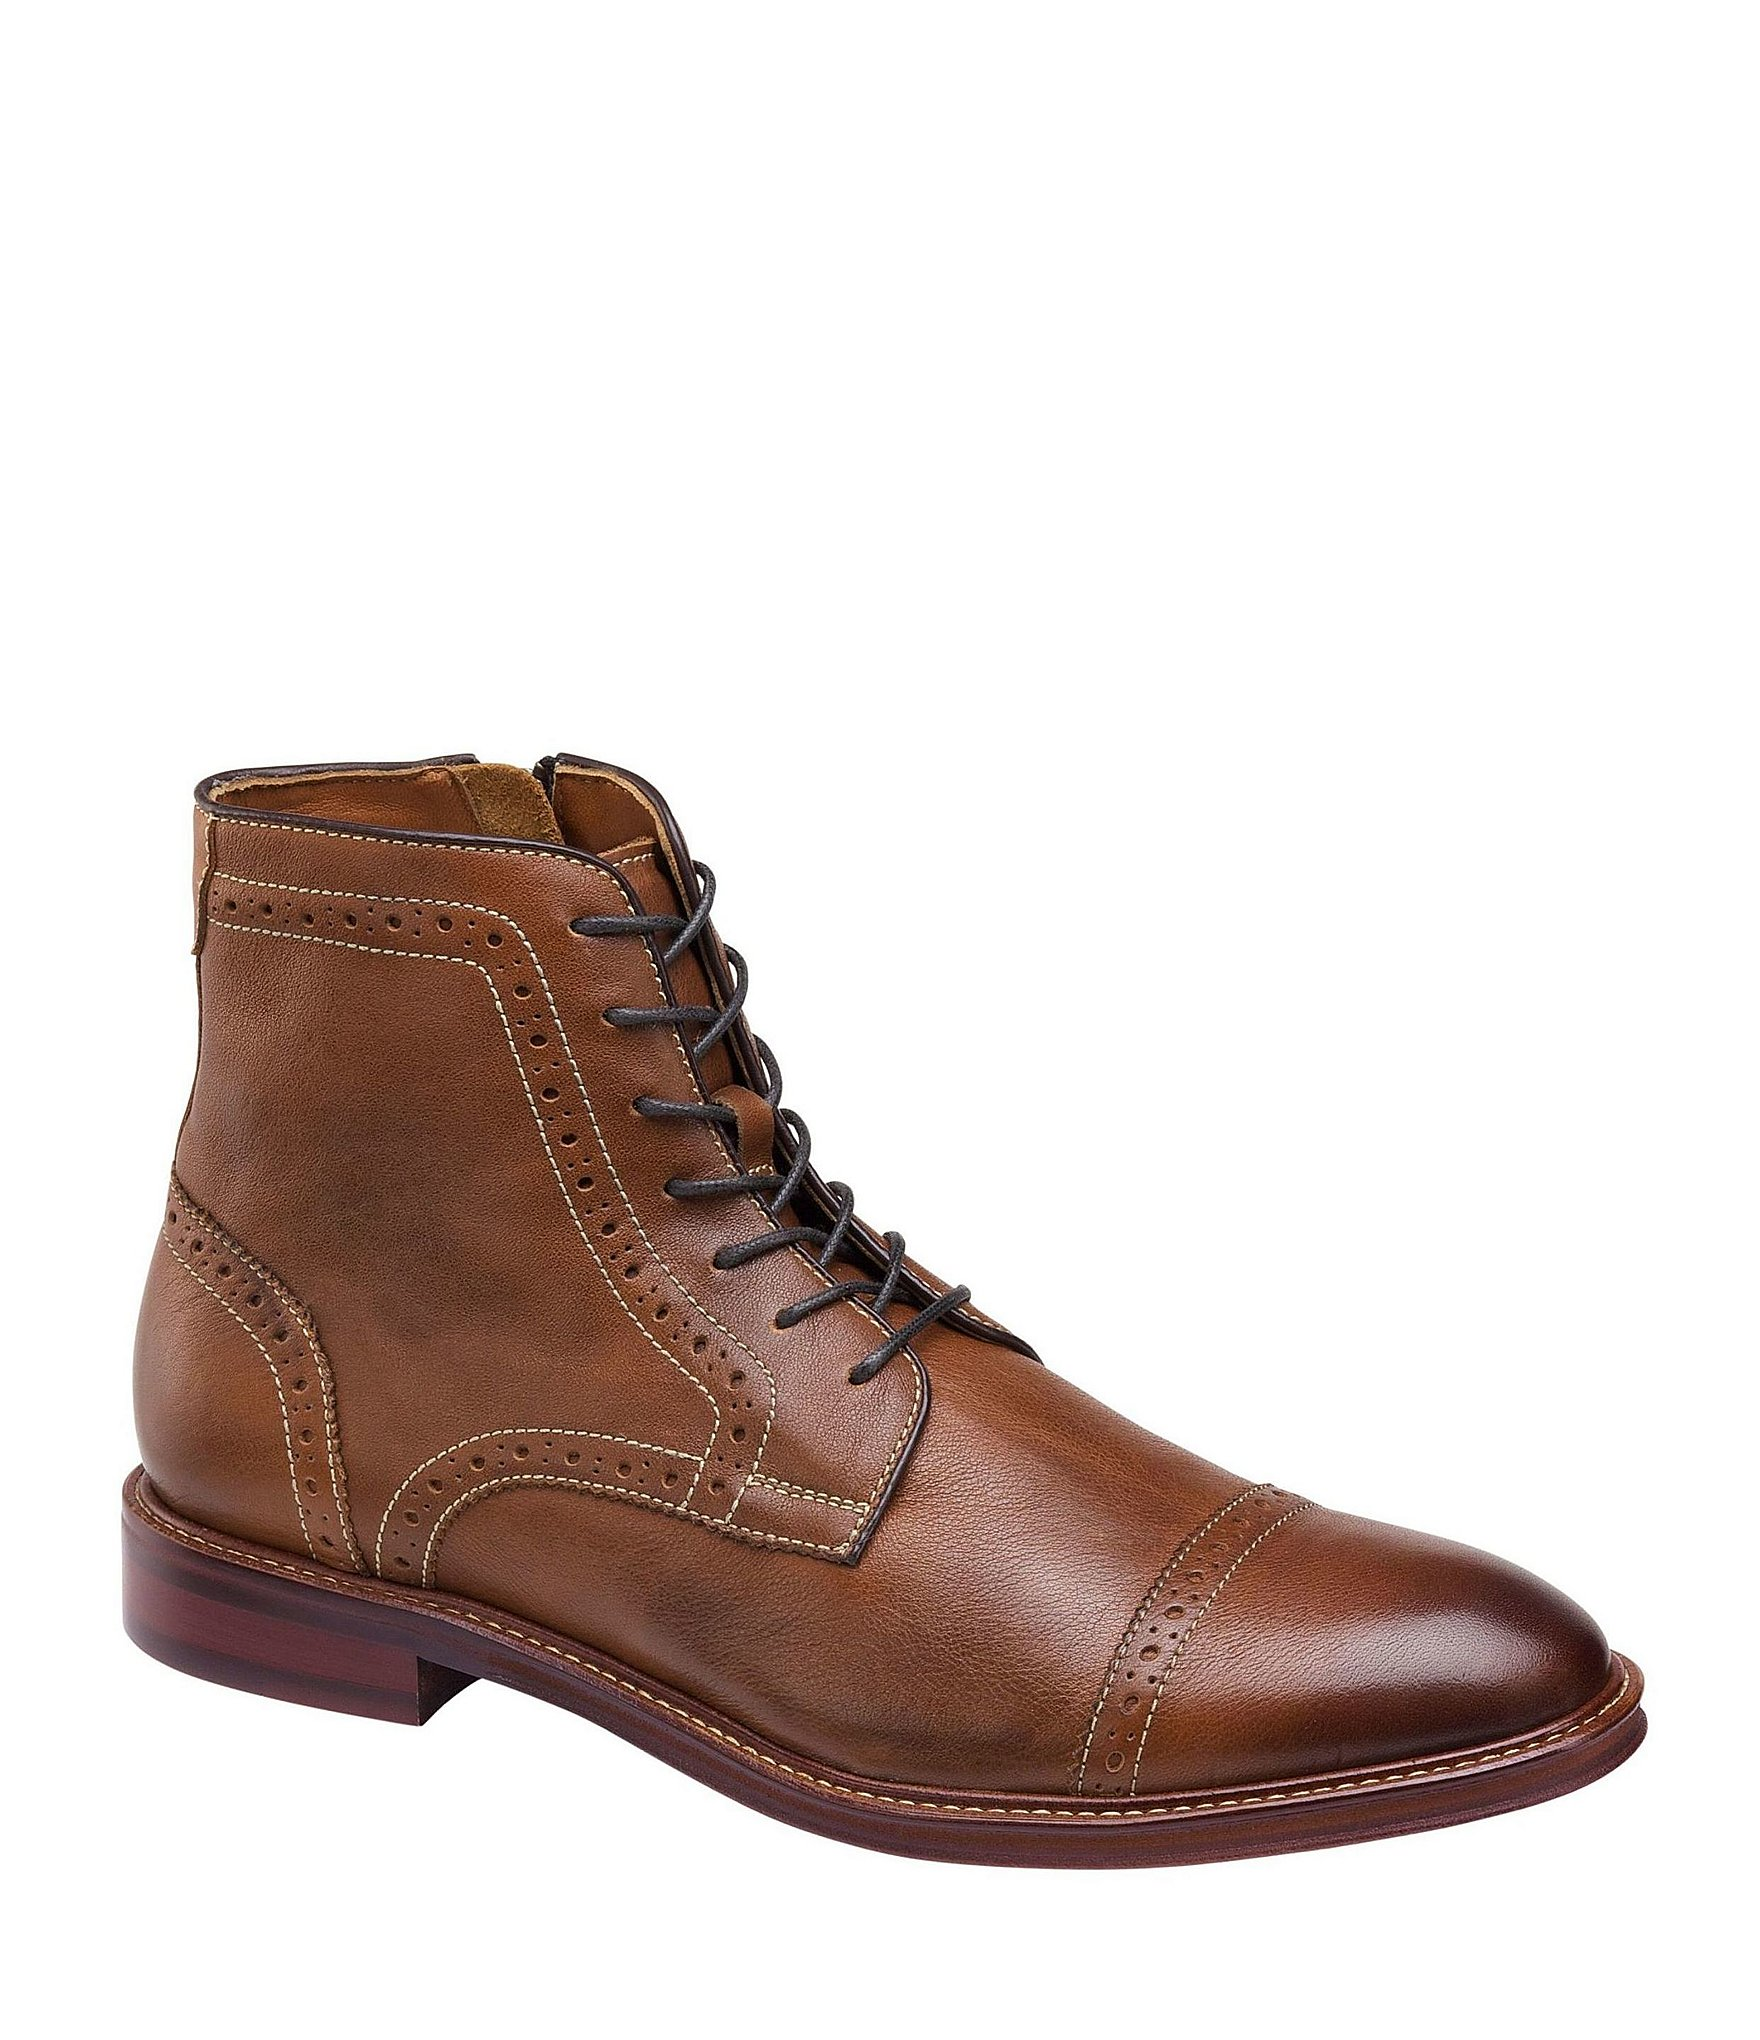 f59c7182c1ad5 Johnston & Murphy Men's Warner Cap Toe Zip Boot